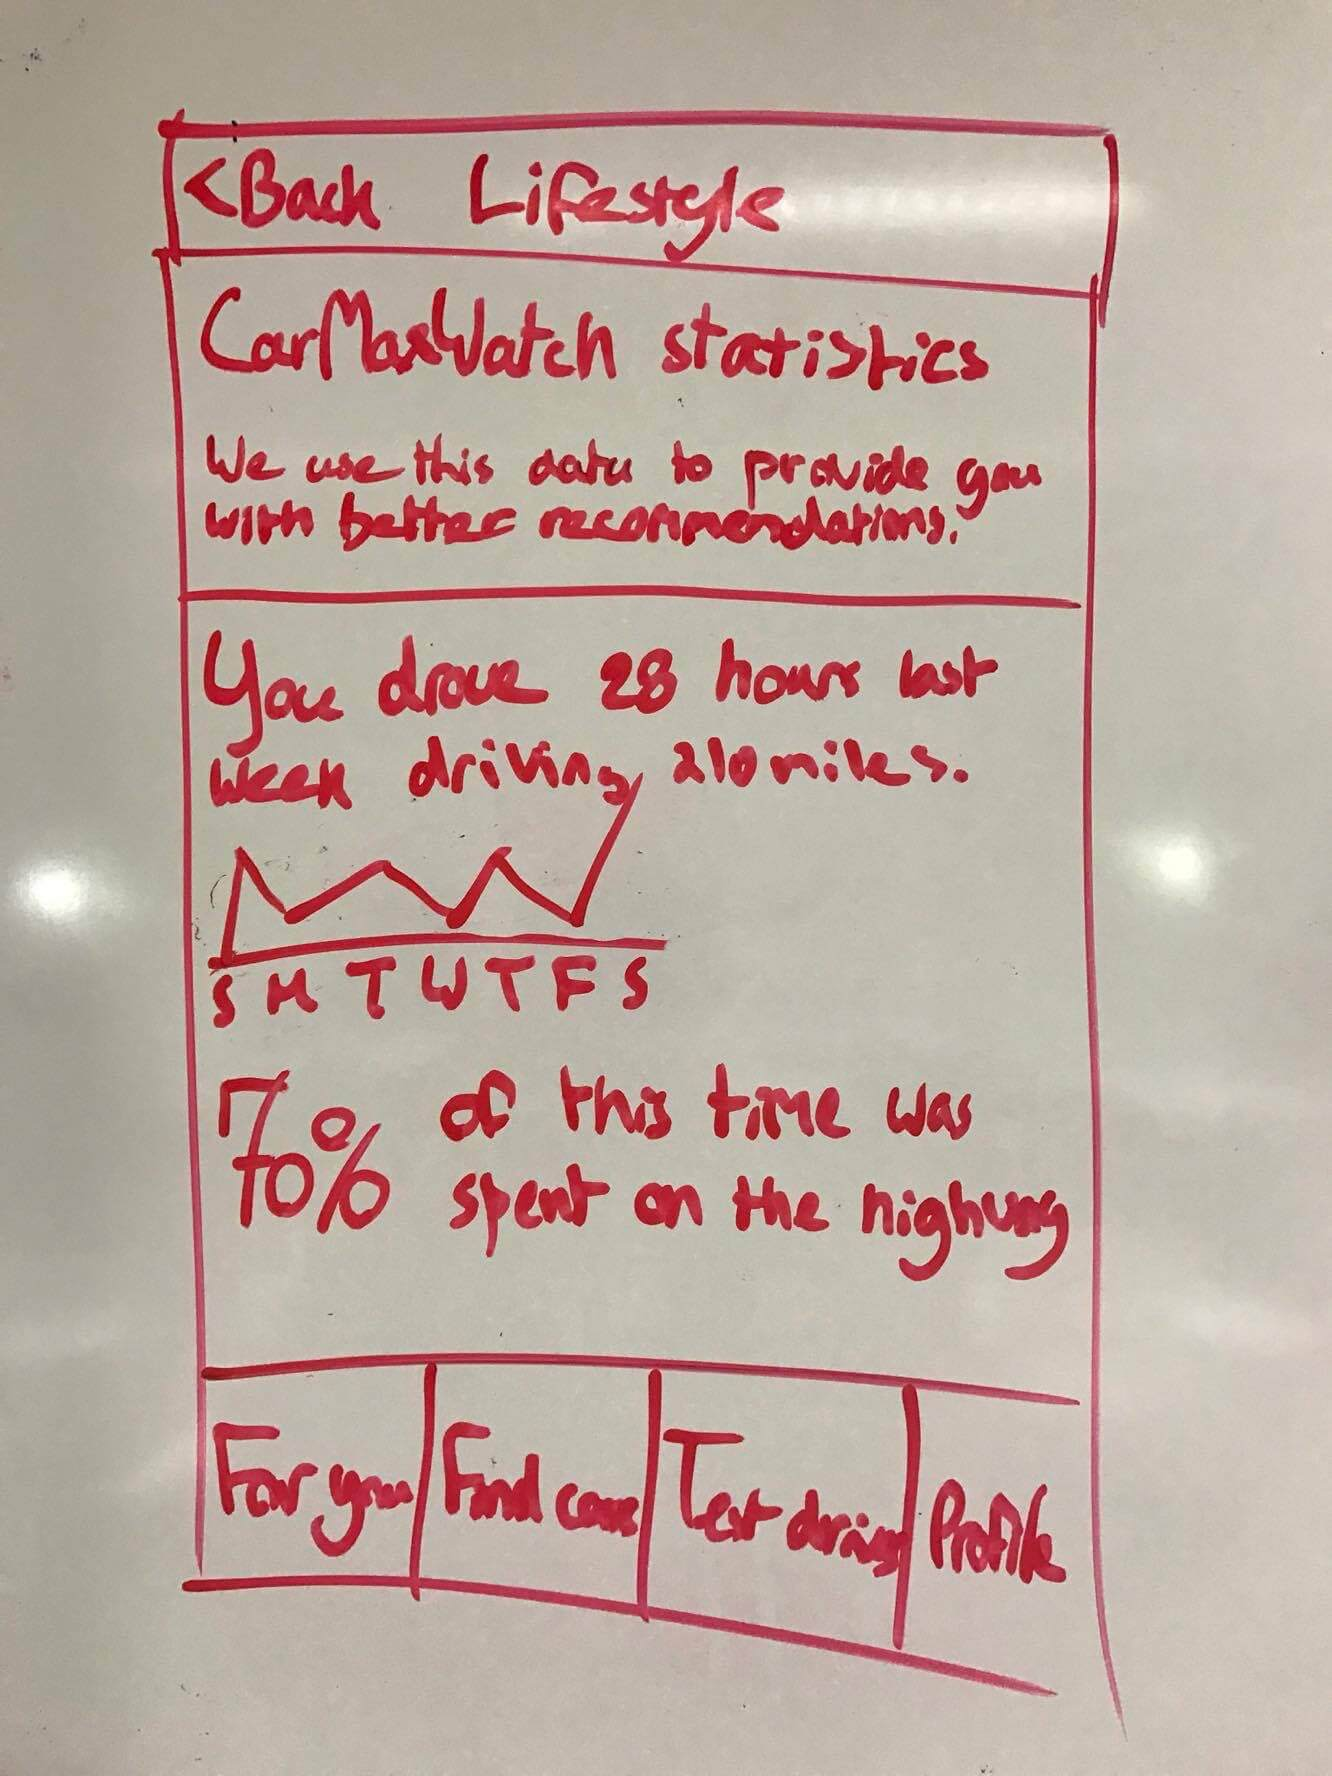 A whiteboard drawing showing driving statistics